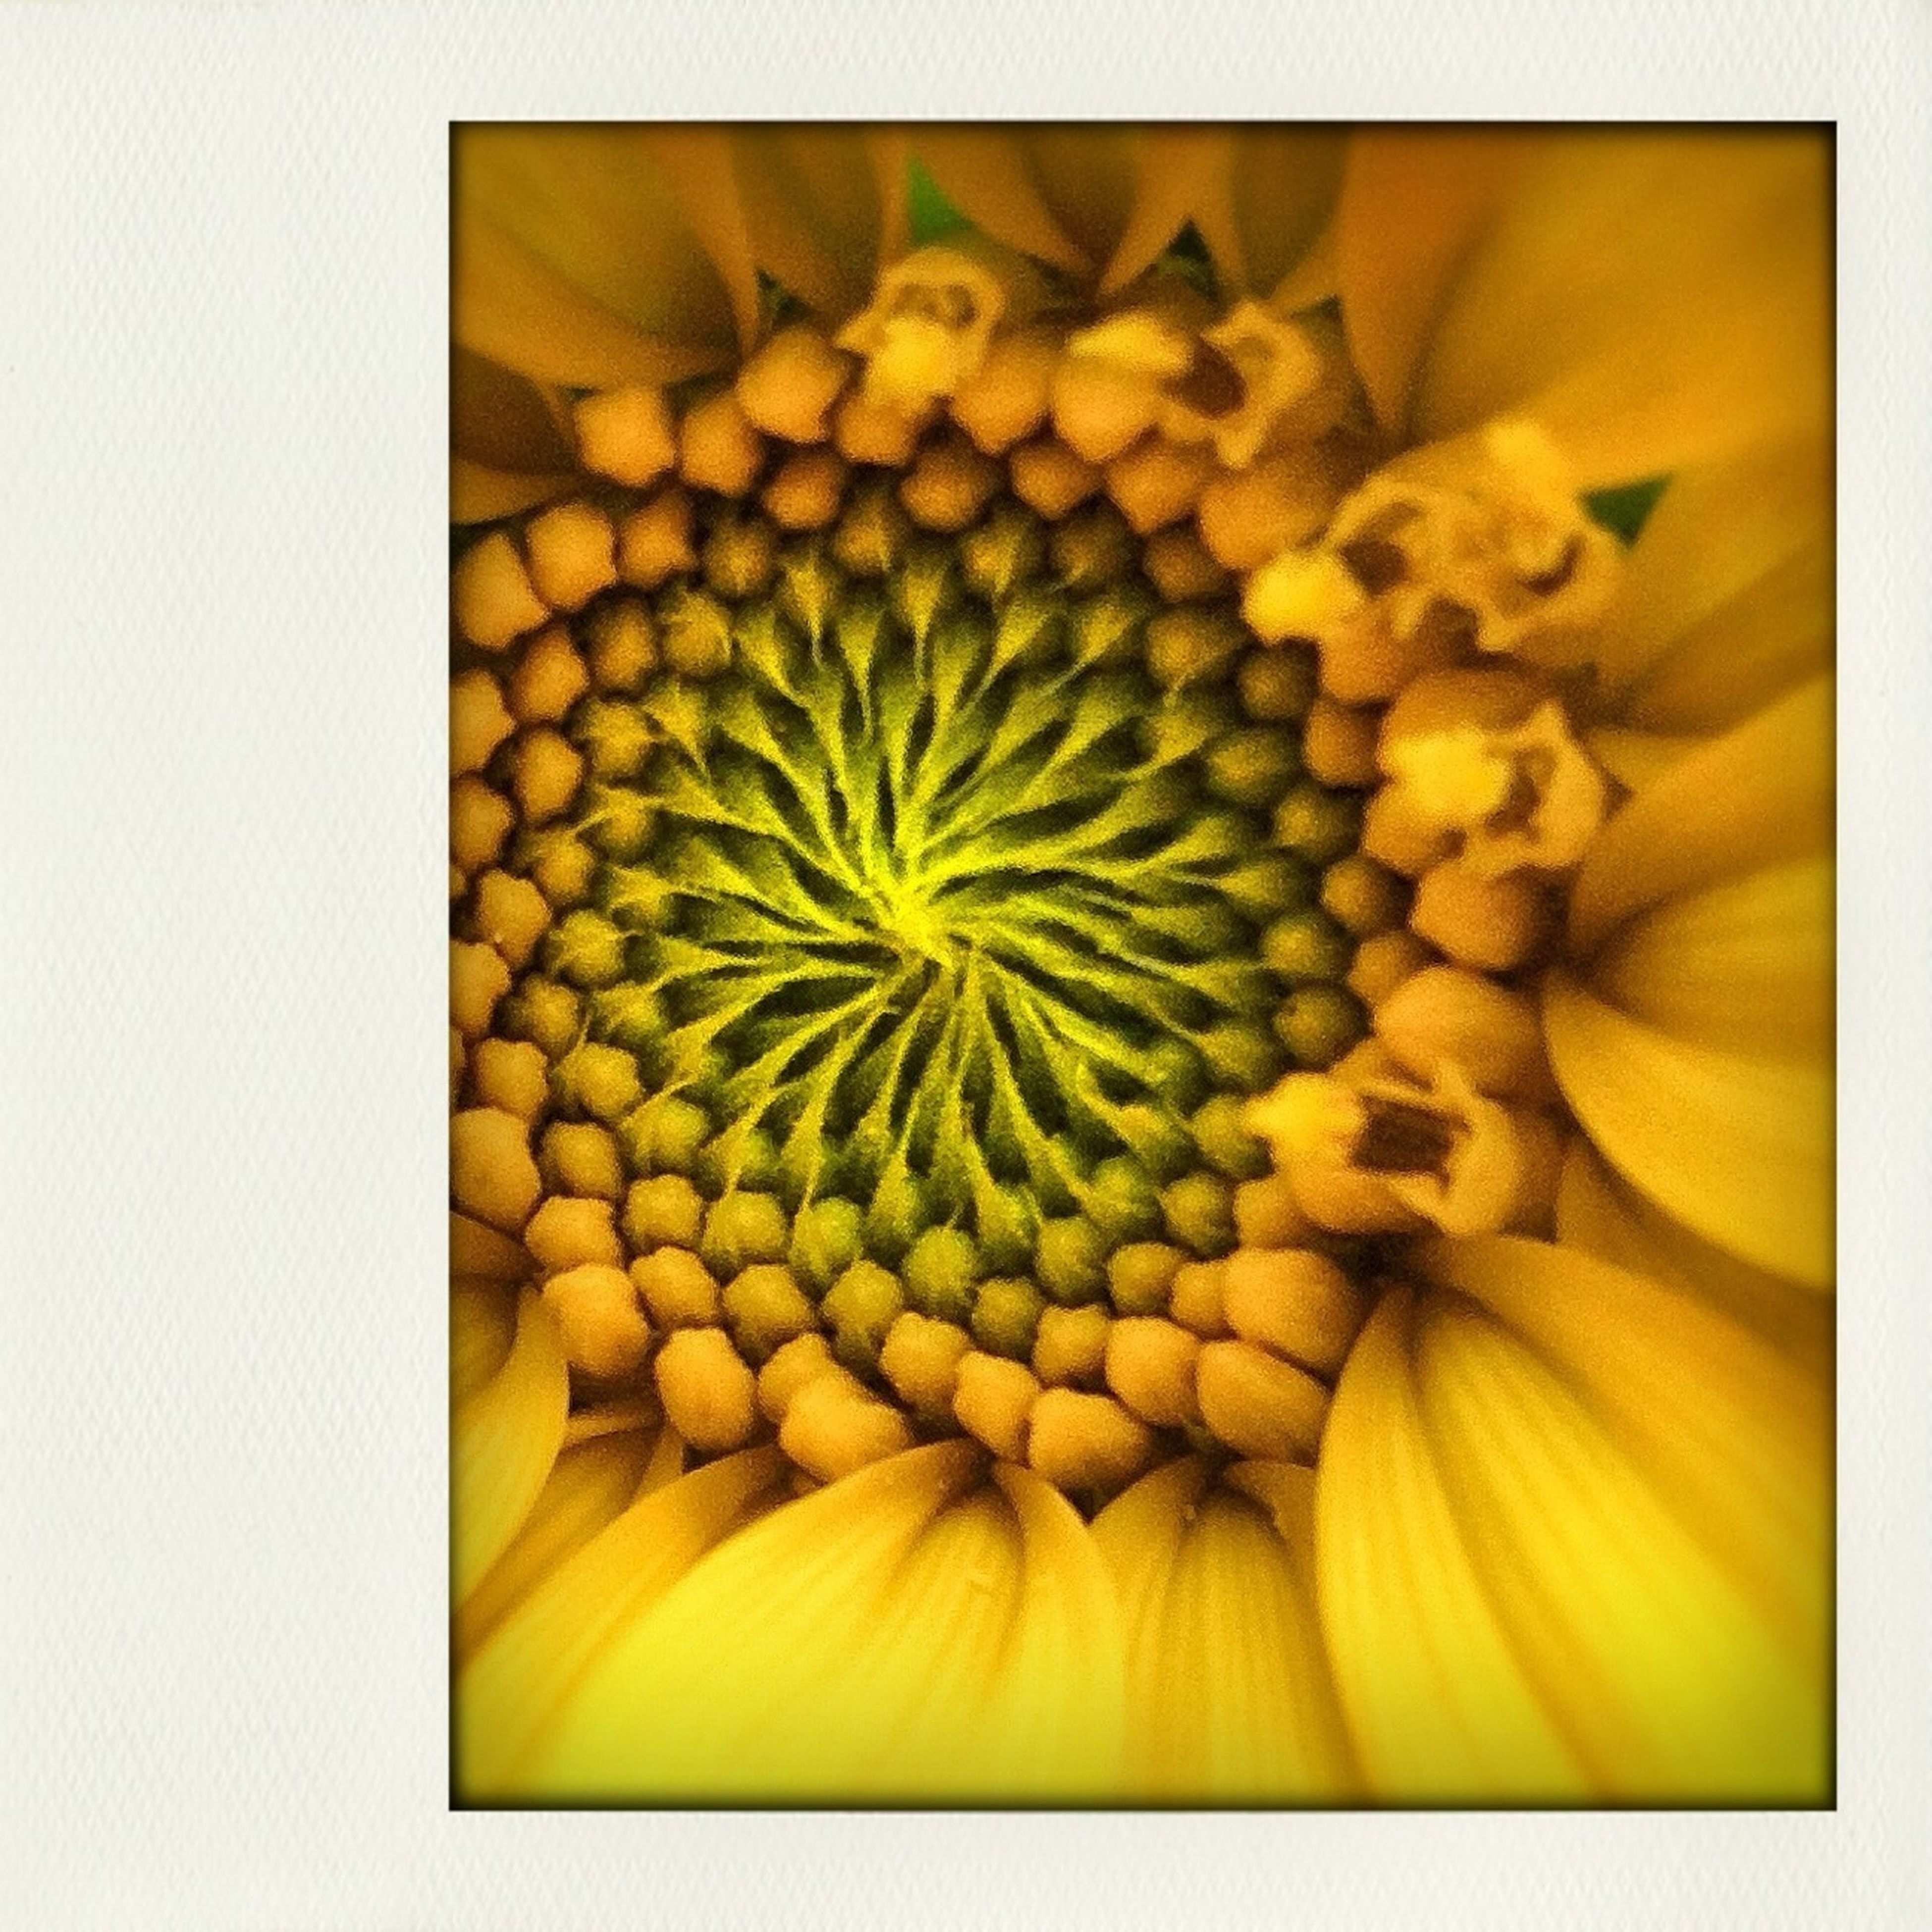 freshness, yellow, flower, flower head, transfer print, close-up, fragility, studio shot, beauty in nature, petal, growth, auto post production filter, nature, healthy eating, full frame, food and drink, single flower, sunflower, backgrounds, white background